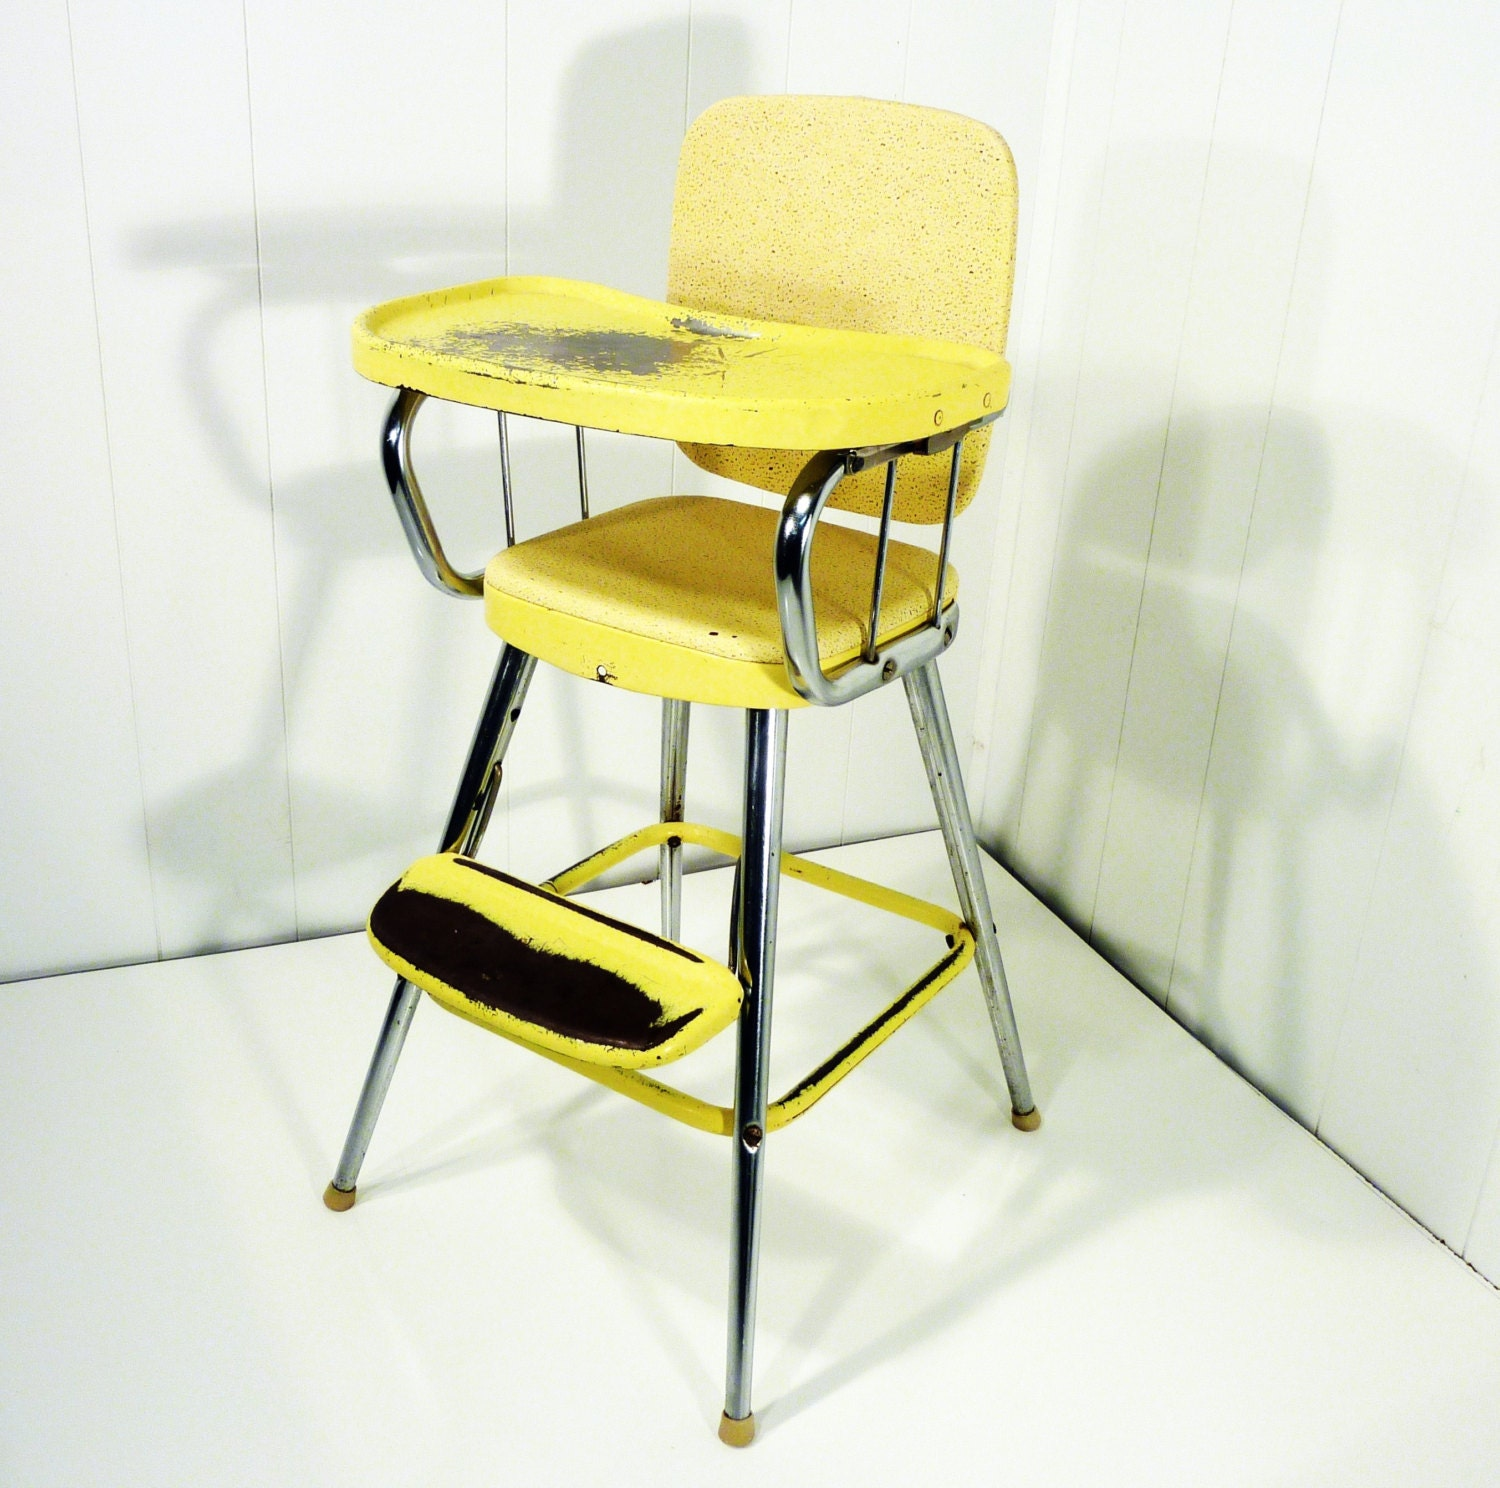 Samsonite retro 50s vintage high chair yellow original label for 1950s chair styles